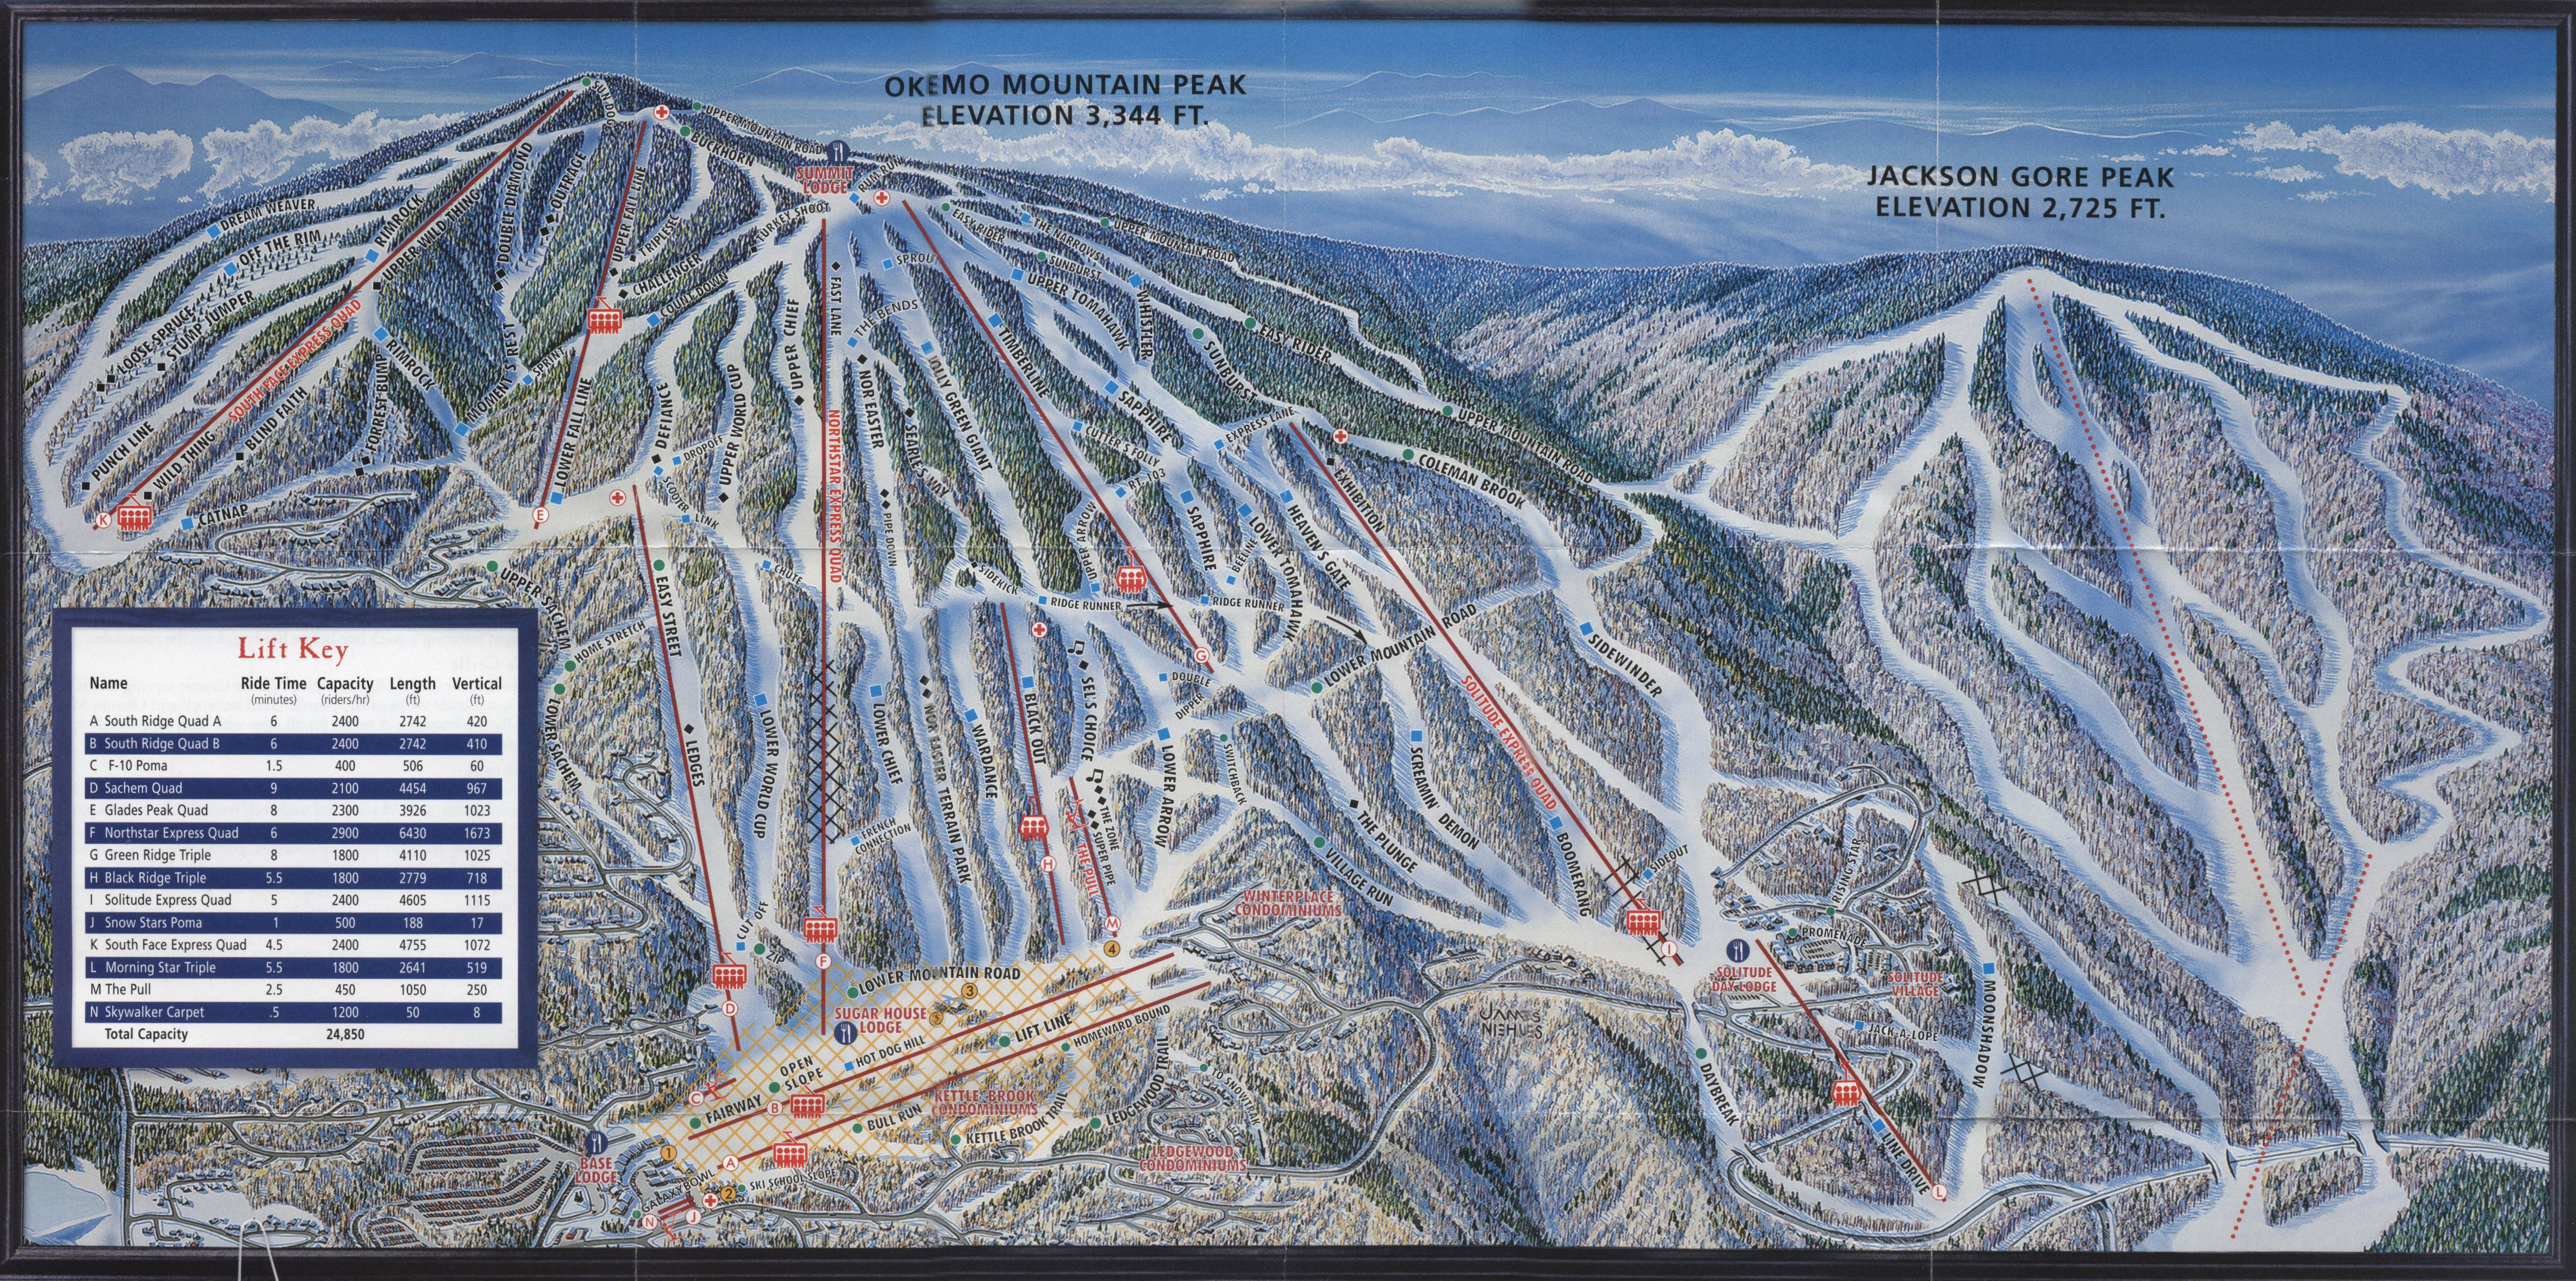 okemo mountain resort - skimap